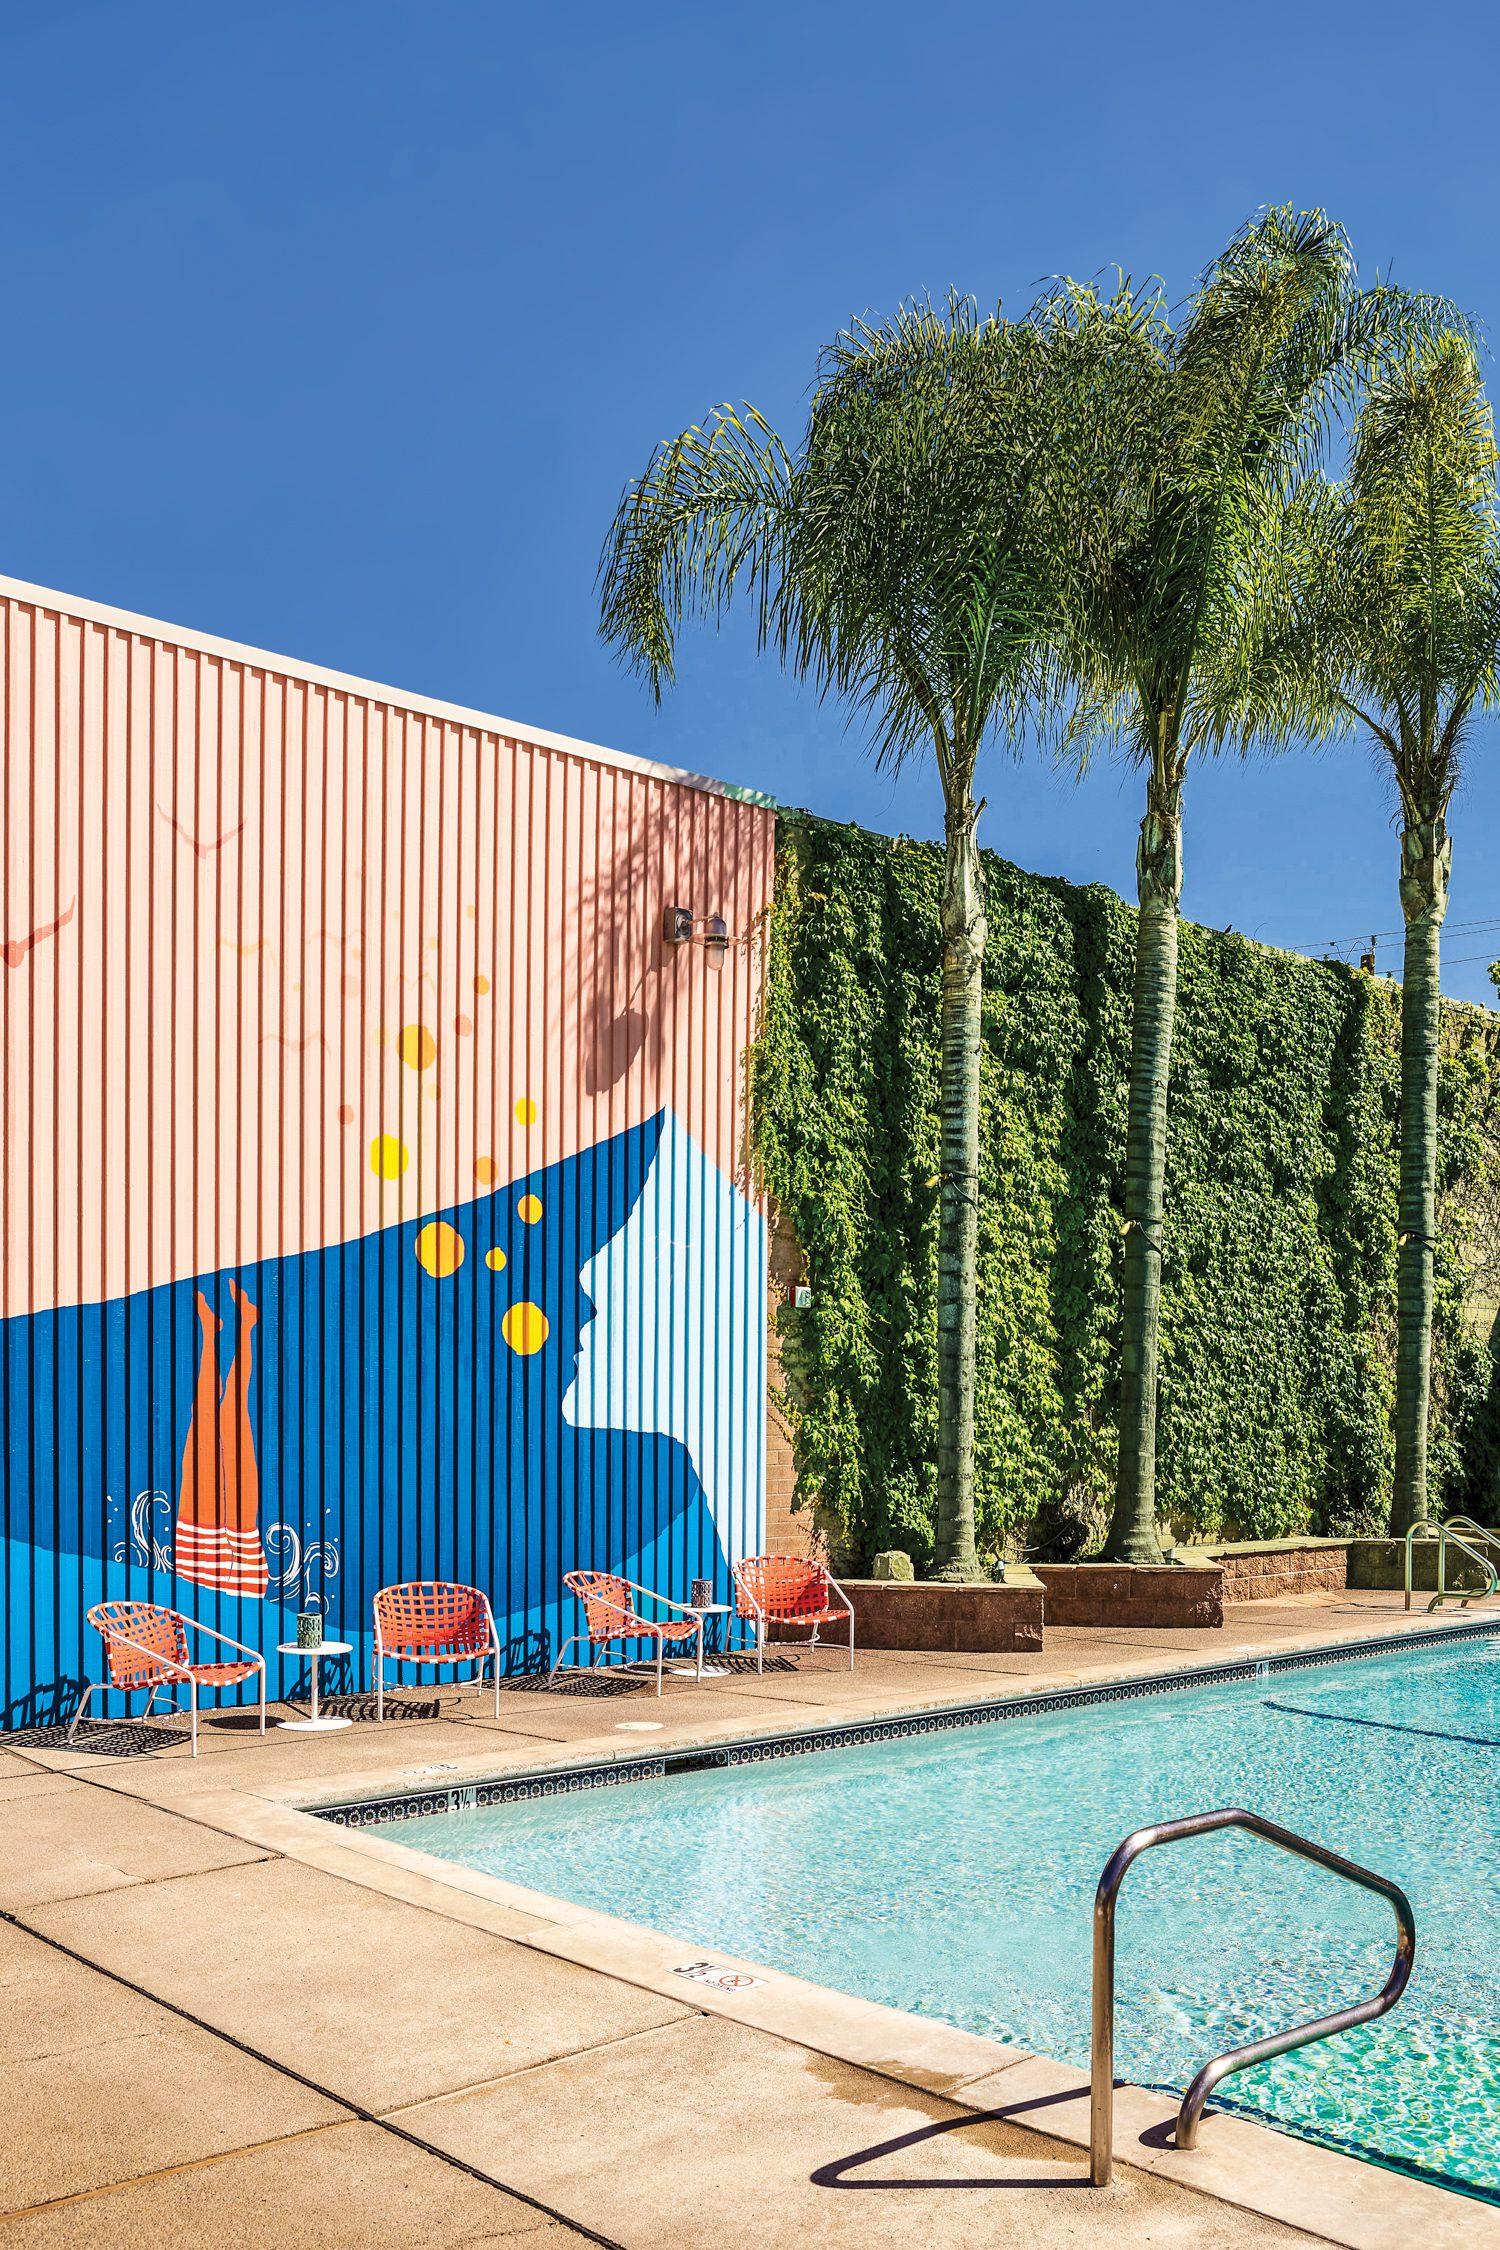 Truth to Paper's 20-foot-tall mural, Brown Jordan's Kantan lounge chairs by Tadao Inouye, and Drops side tables from Janus et Cie update one of three pools at Dr. Wilkinson's Backyard Resort & Mineral Springs, which first opened in Calistoga, California, in 1952, and has been recently renovated by EDGInterior Architecture + Design andSB Architects.